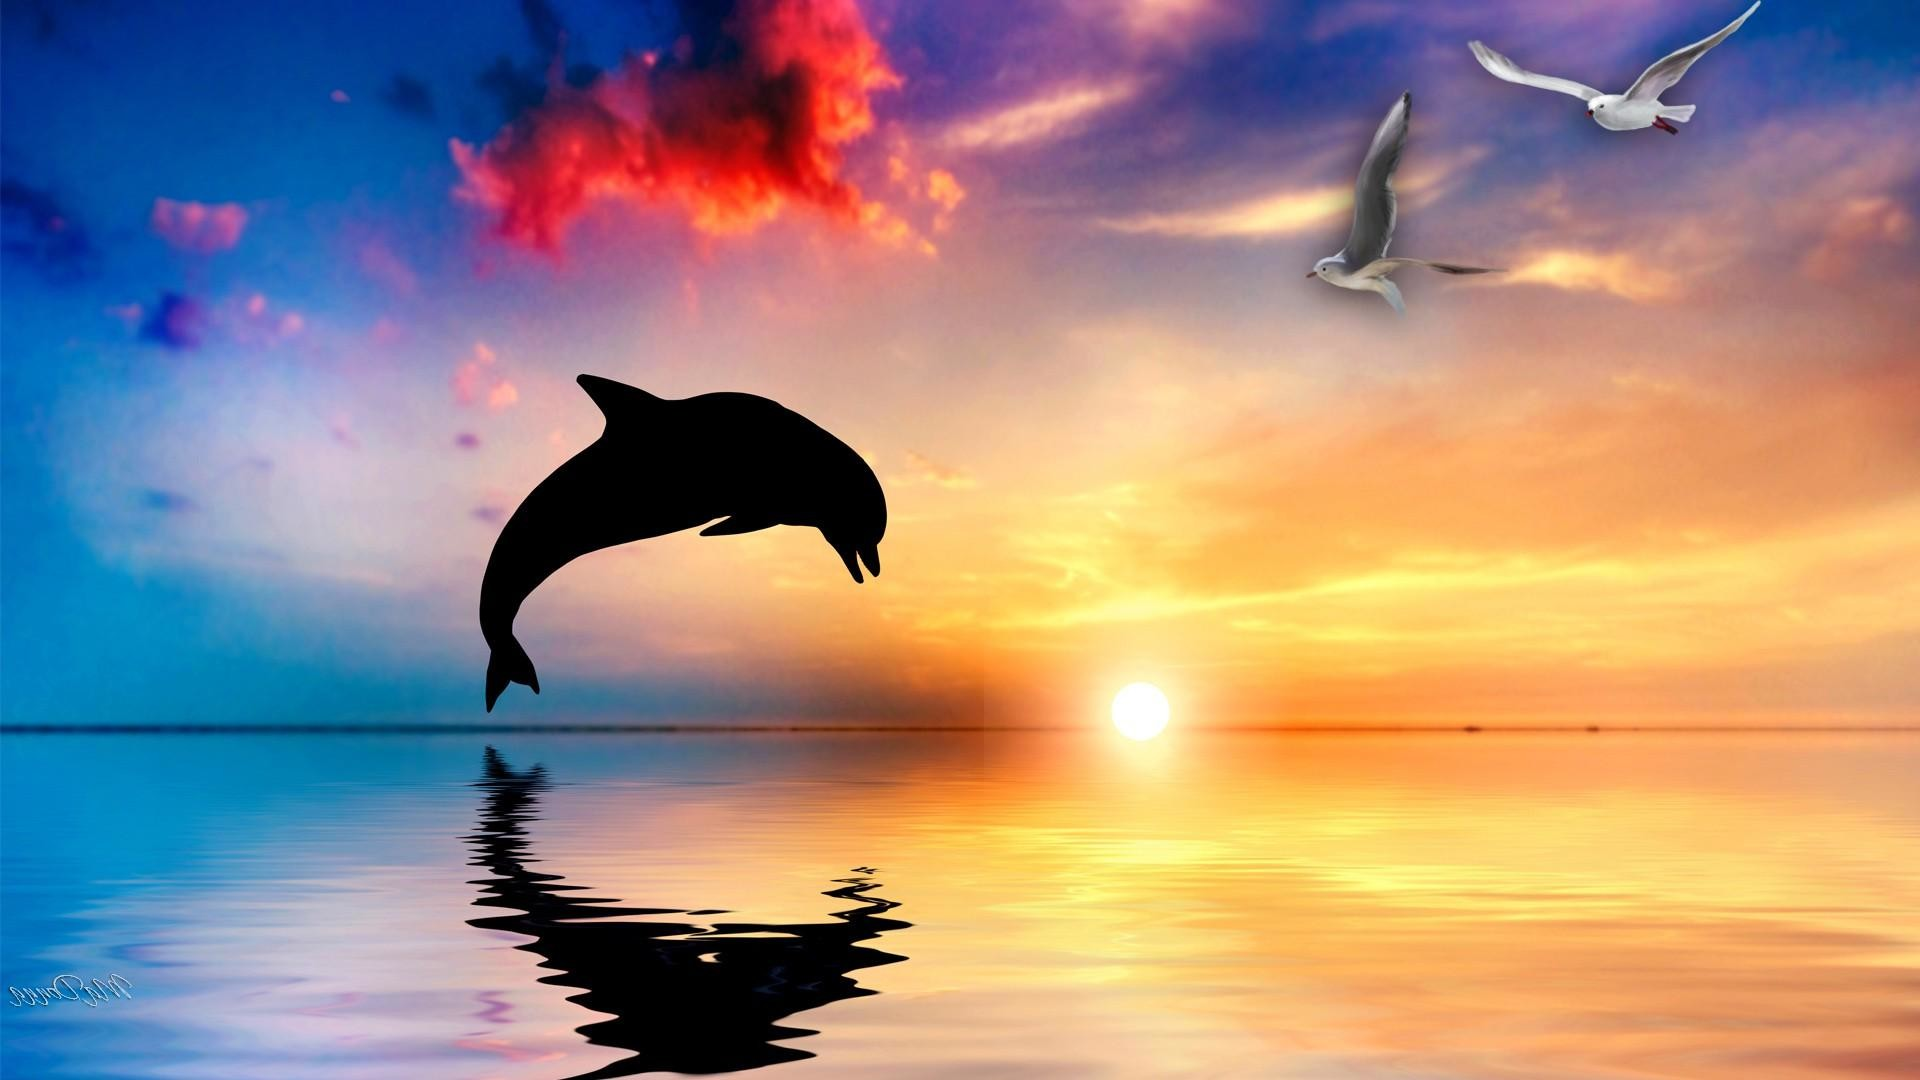 Dolphin HD Wallpapers and Backgrounds   HD Wallpapers   Pinterest    Wallpaper, Hd wallpaper and Wallpaper backgrounds